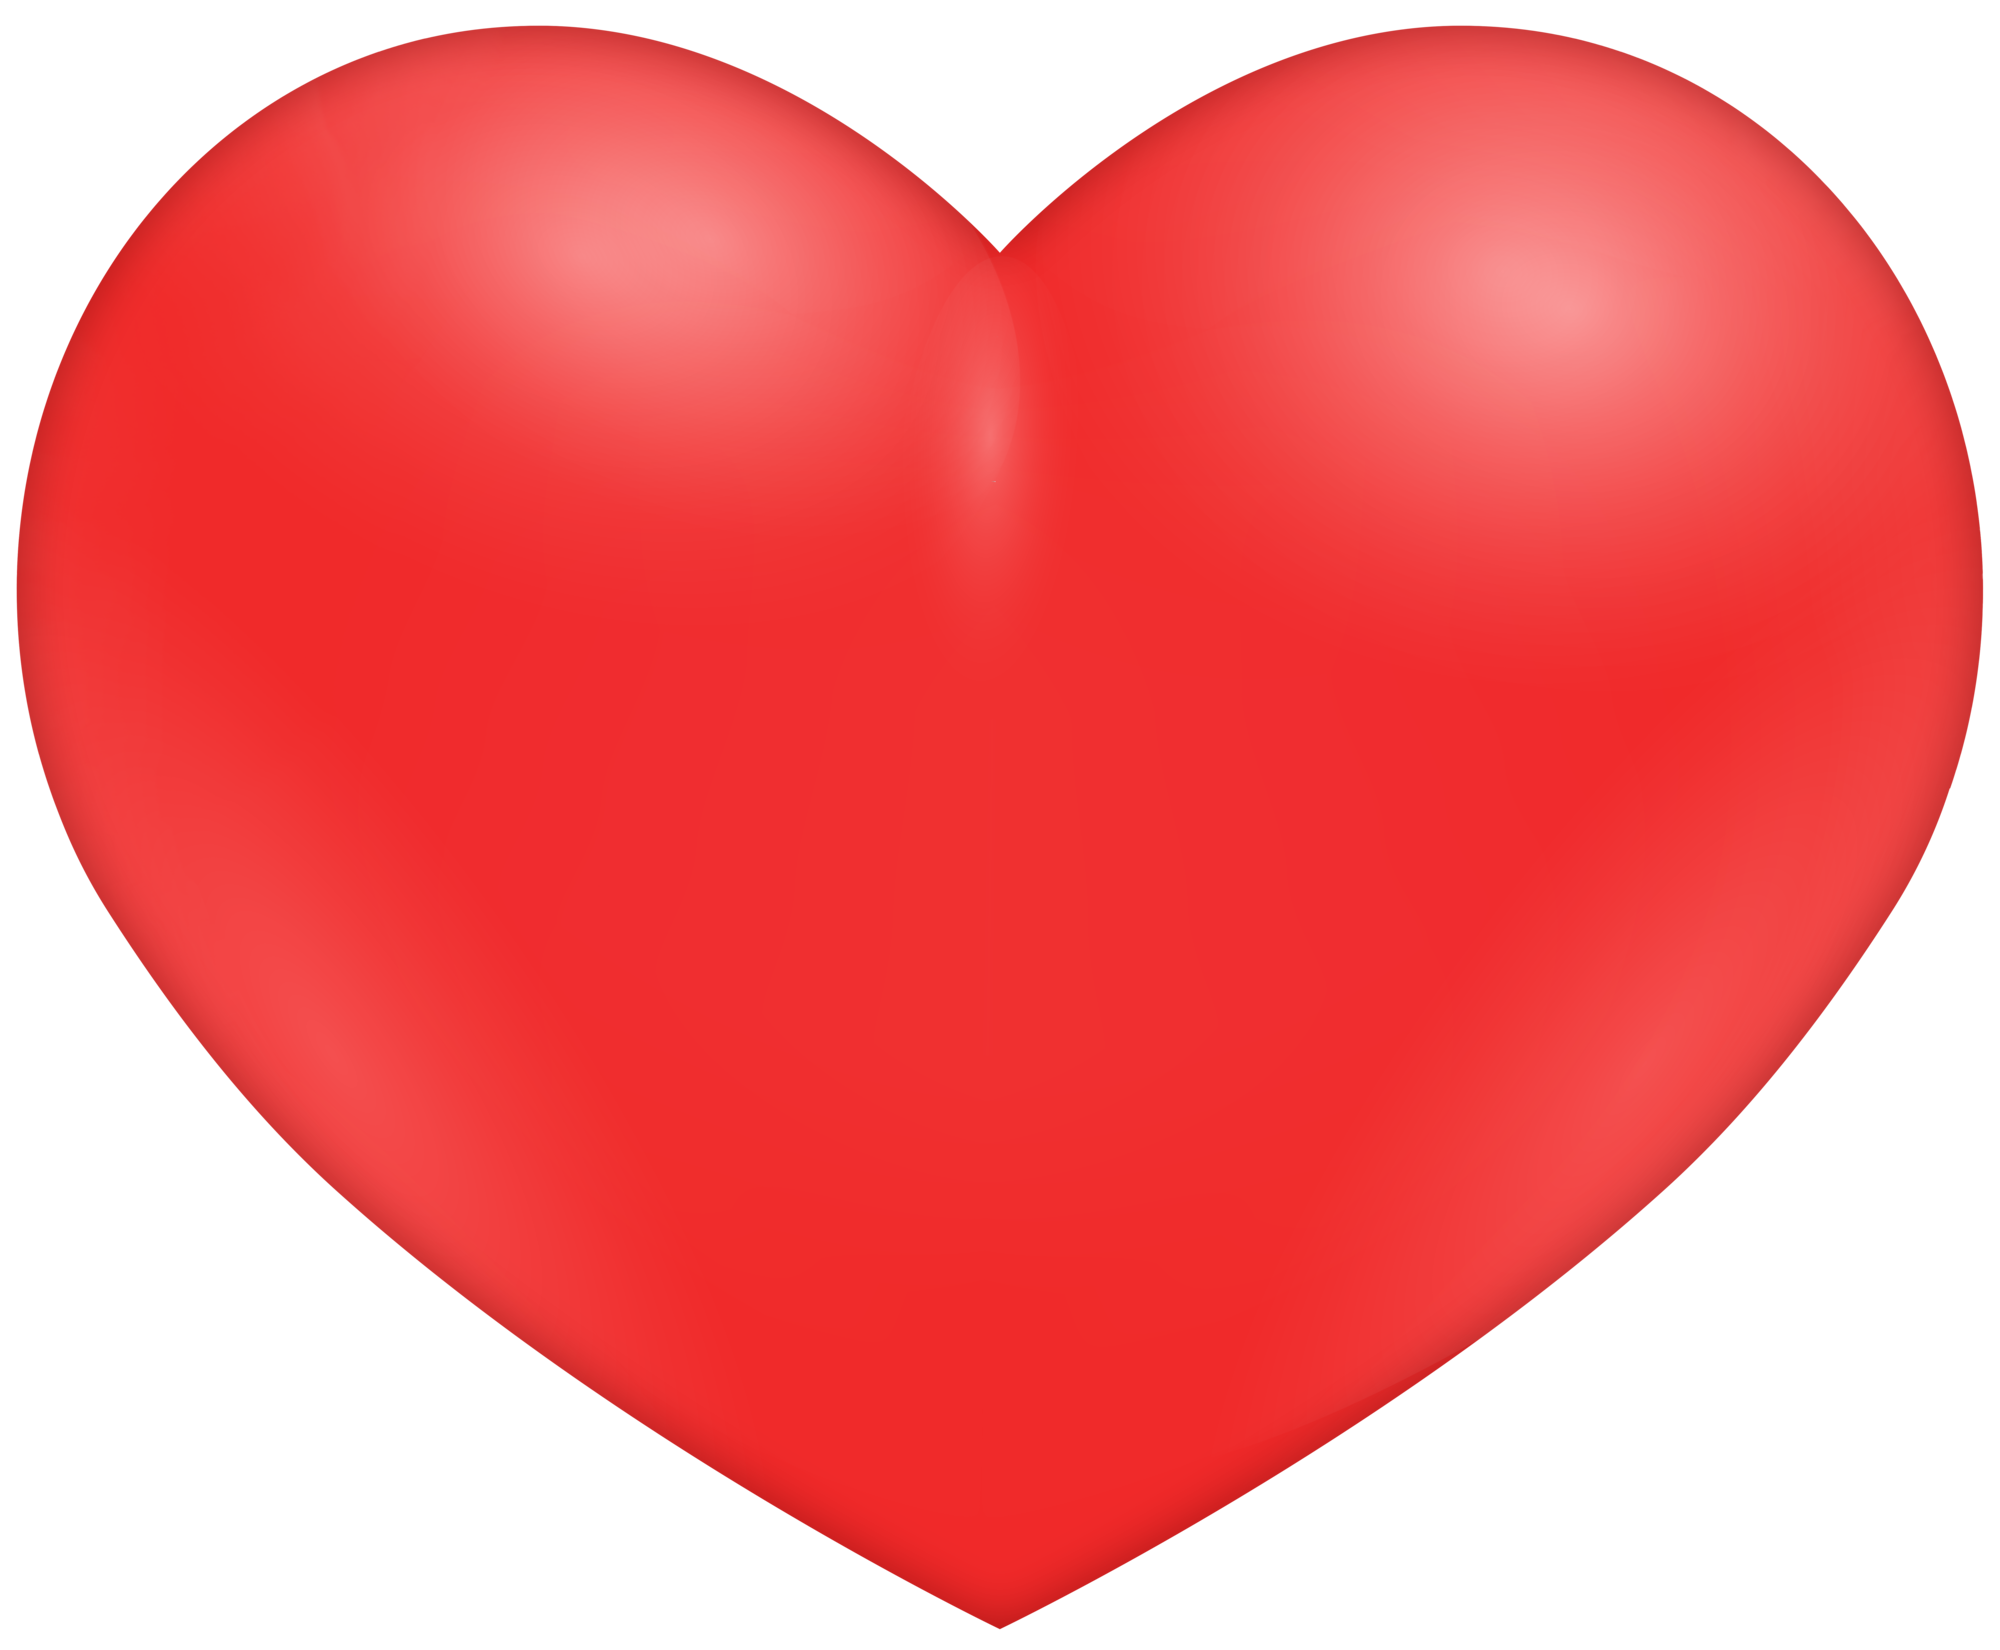 Red Heart Transparent Image